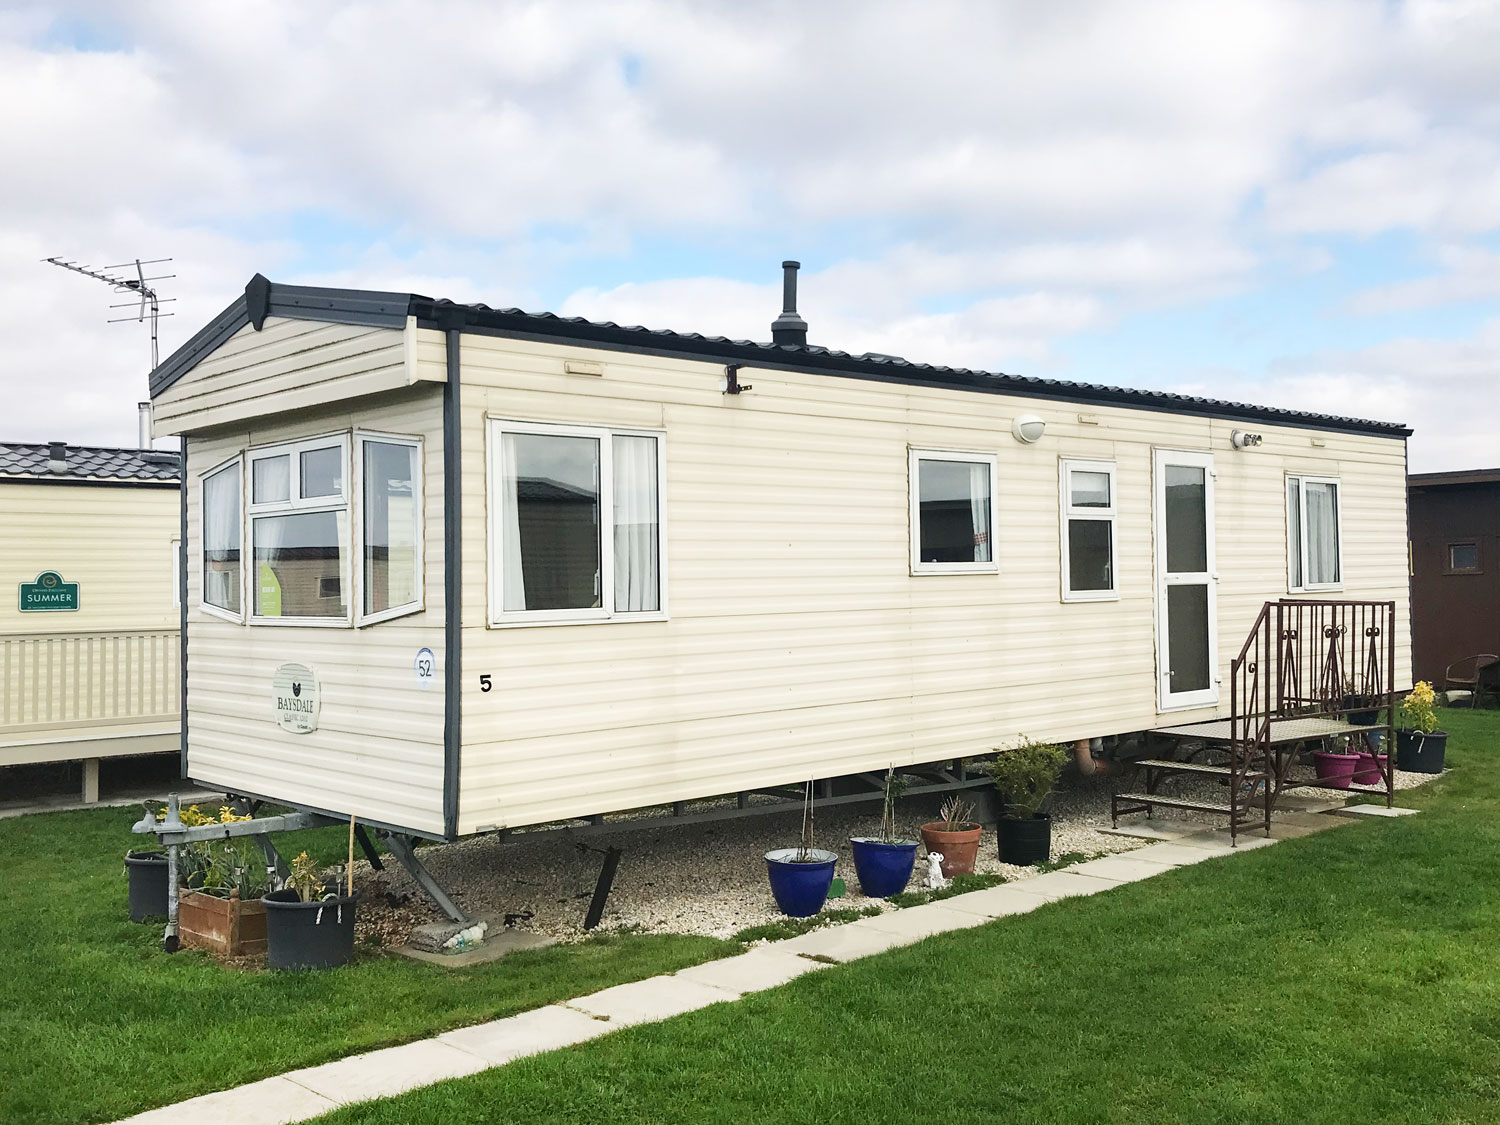 Cosalt-Classic-Comfort-For-Sale-Mablethorpe-Lincolnshire